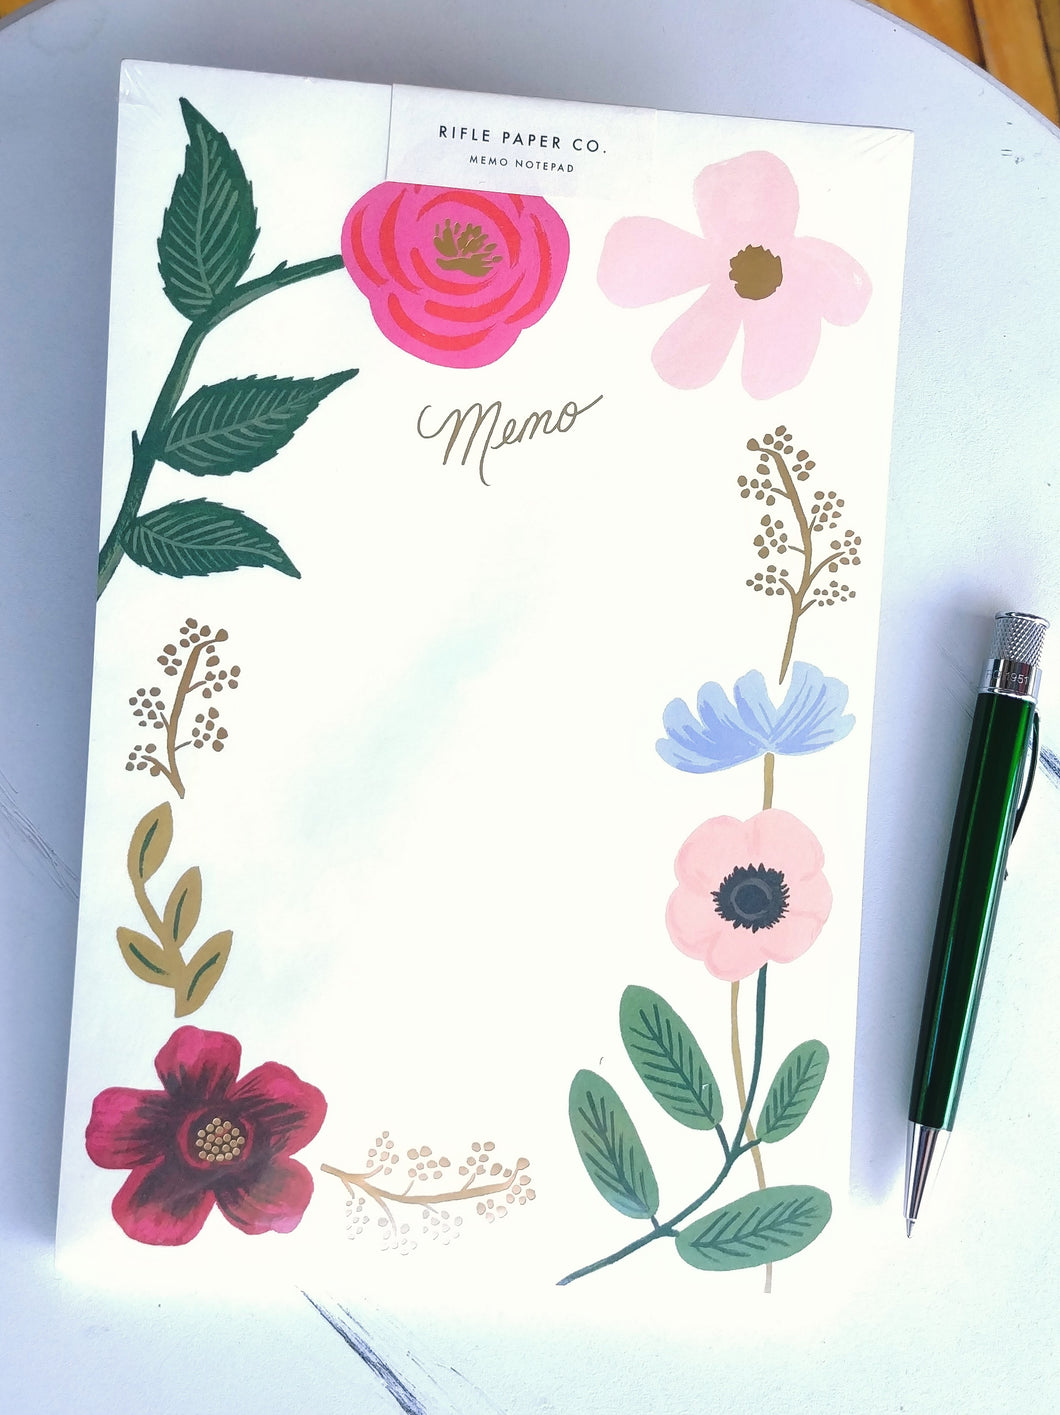 Rifle Memo Notepad- Wildflowers